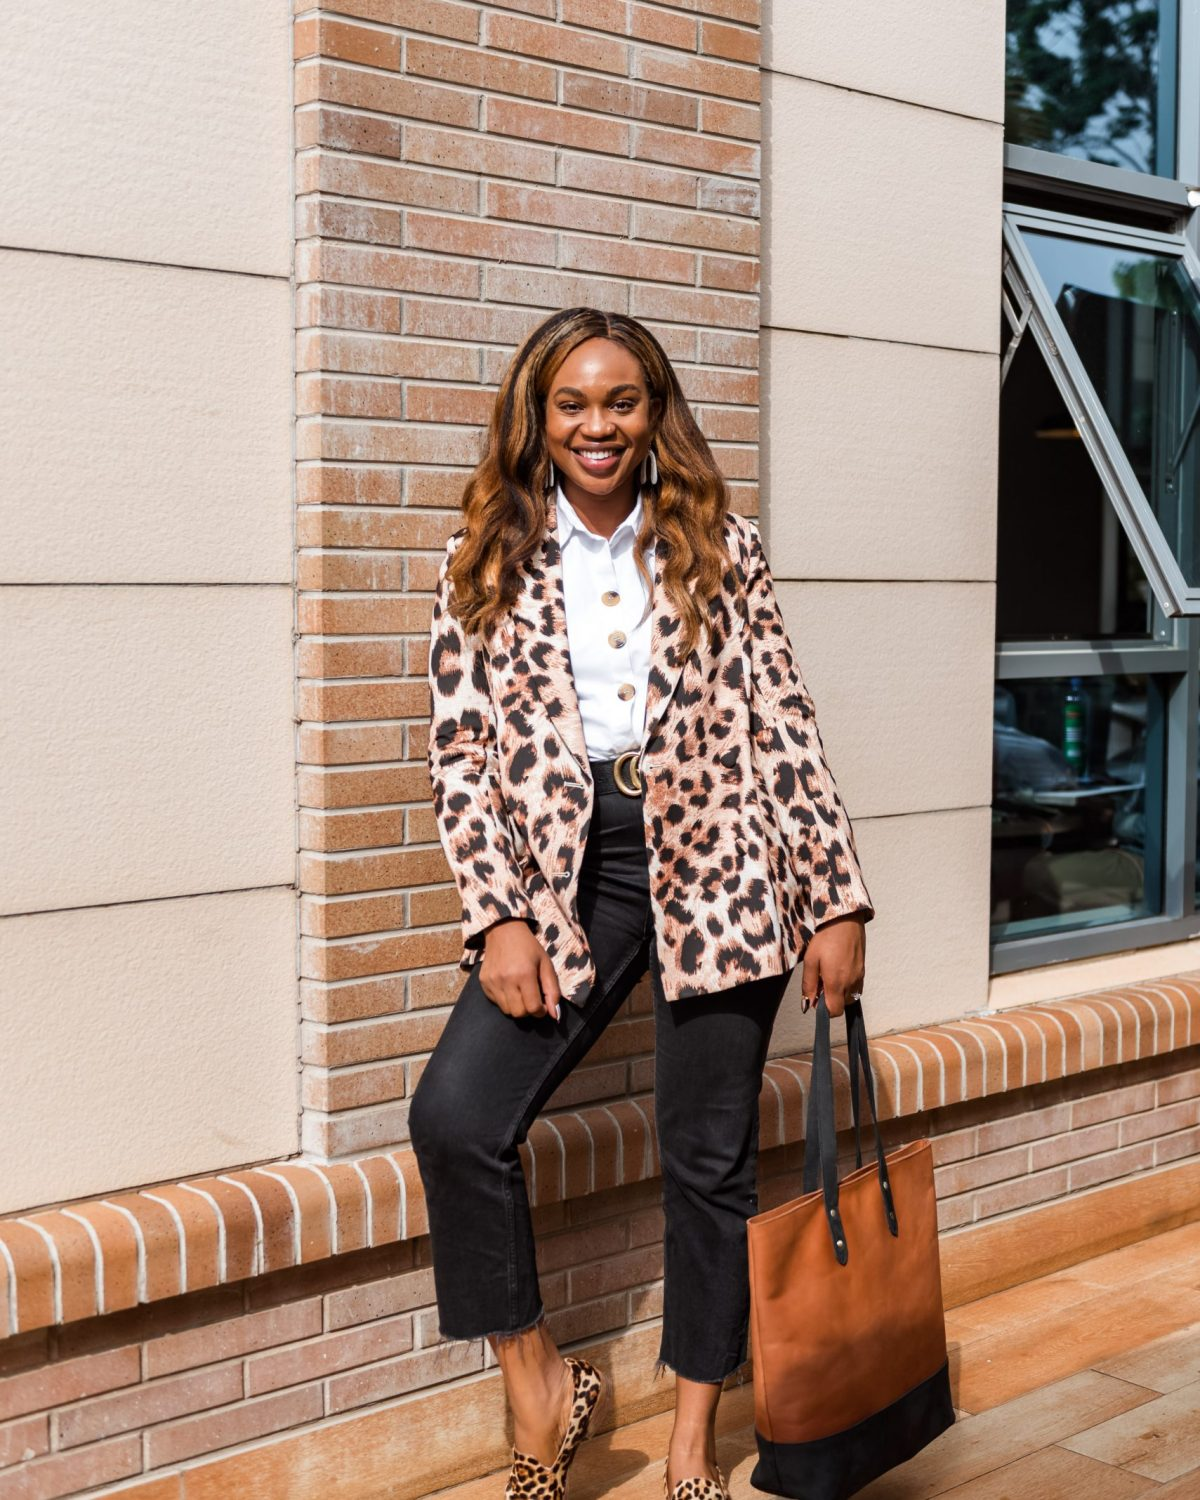 Full outfit shot of Ijeoma Kola posing outside wearing animal print blazer, white shirt, black pants and animal print shoes - How Black Owned Businesses Can Optimize Black History Month